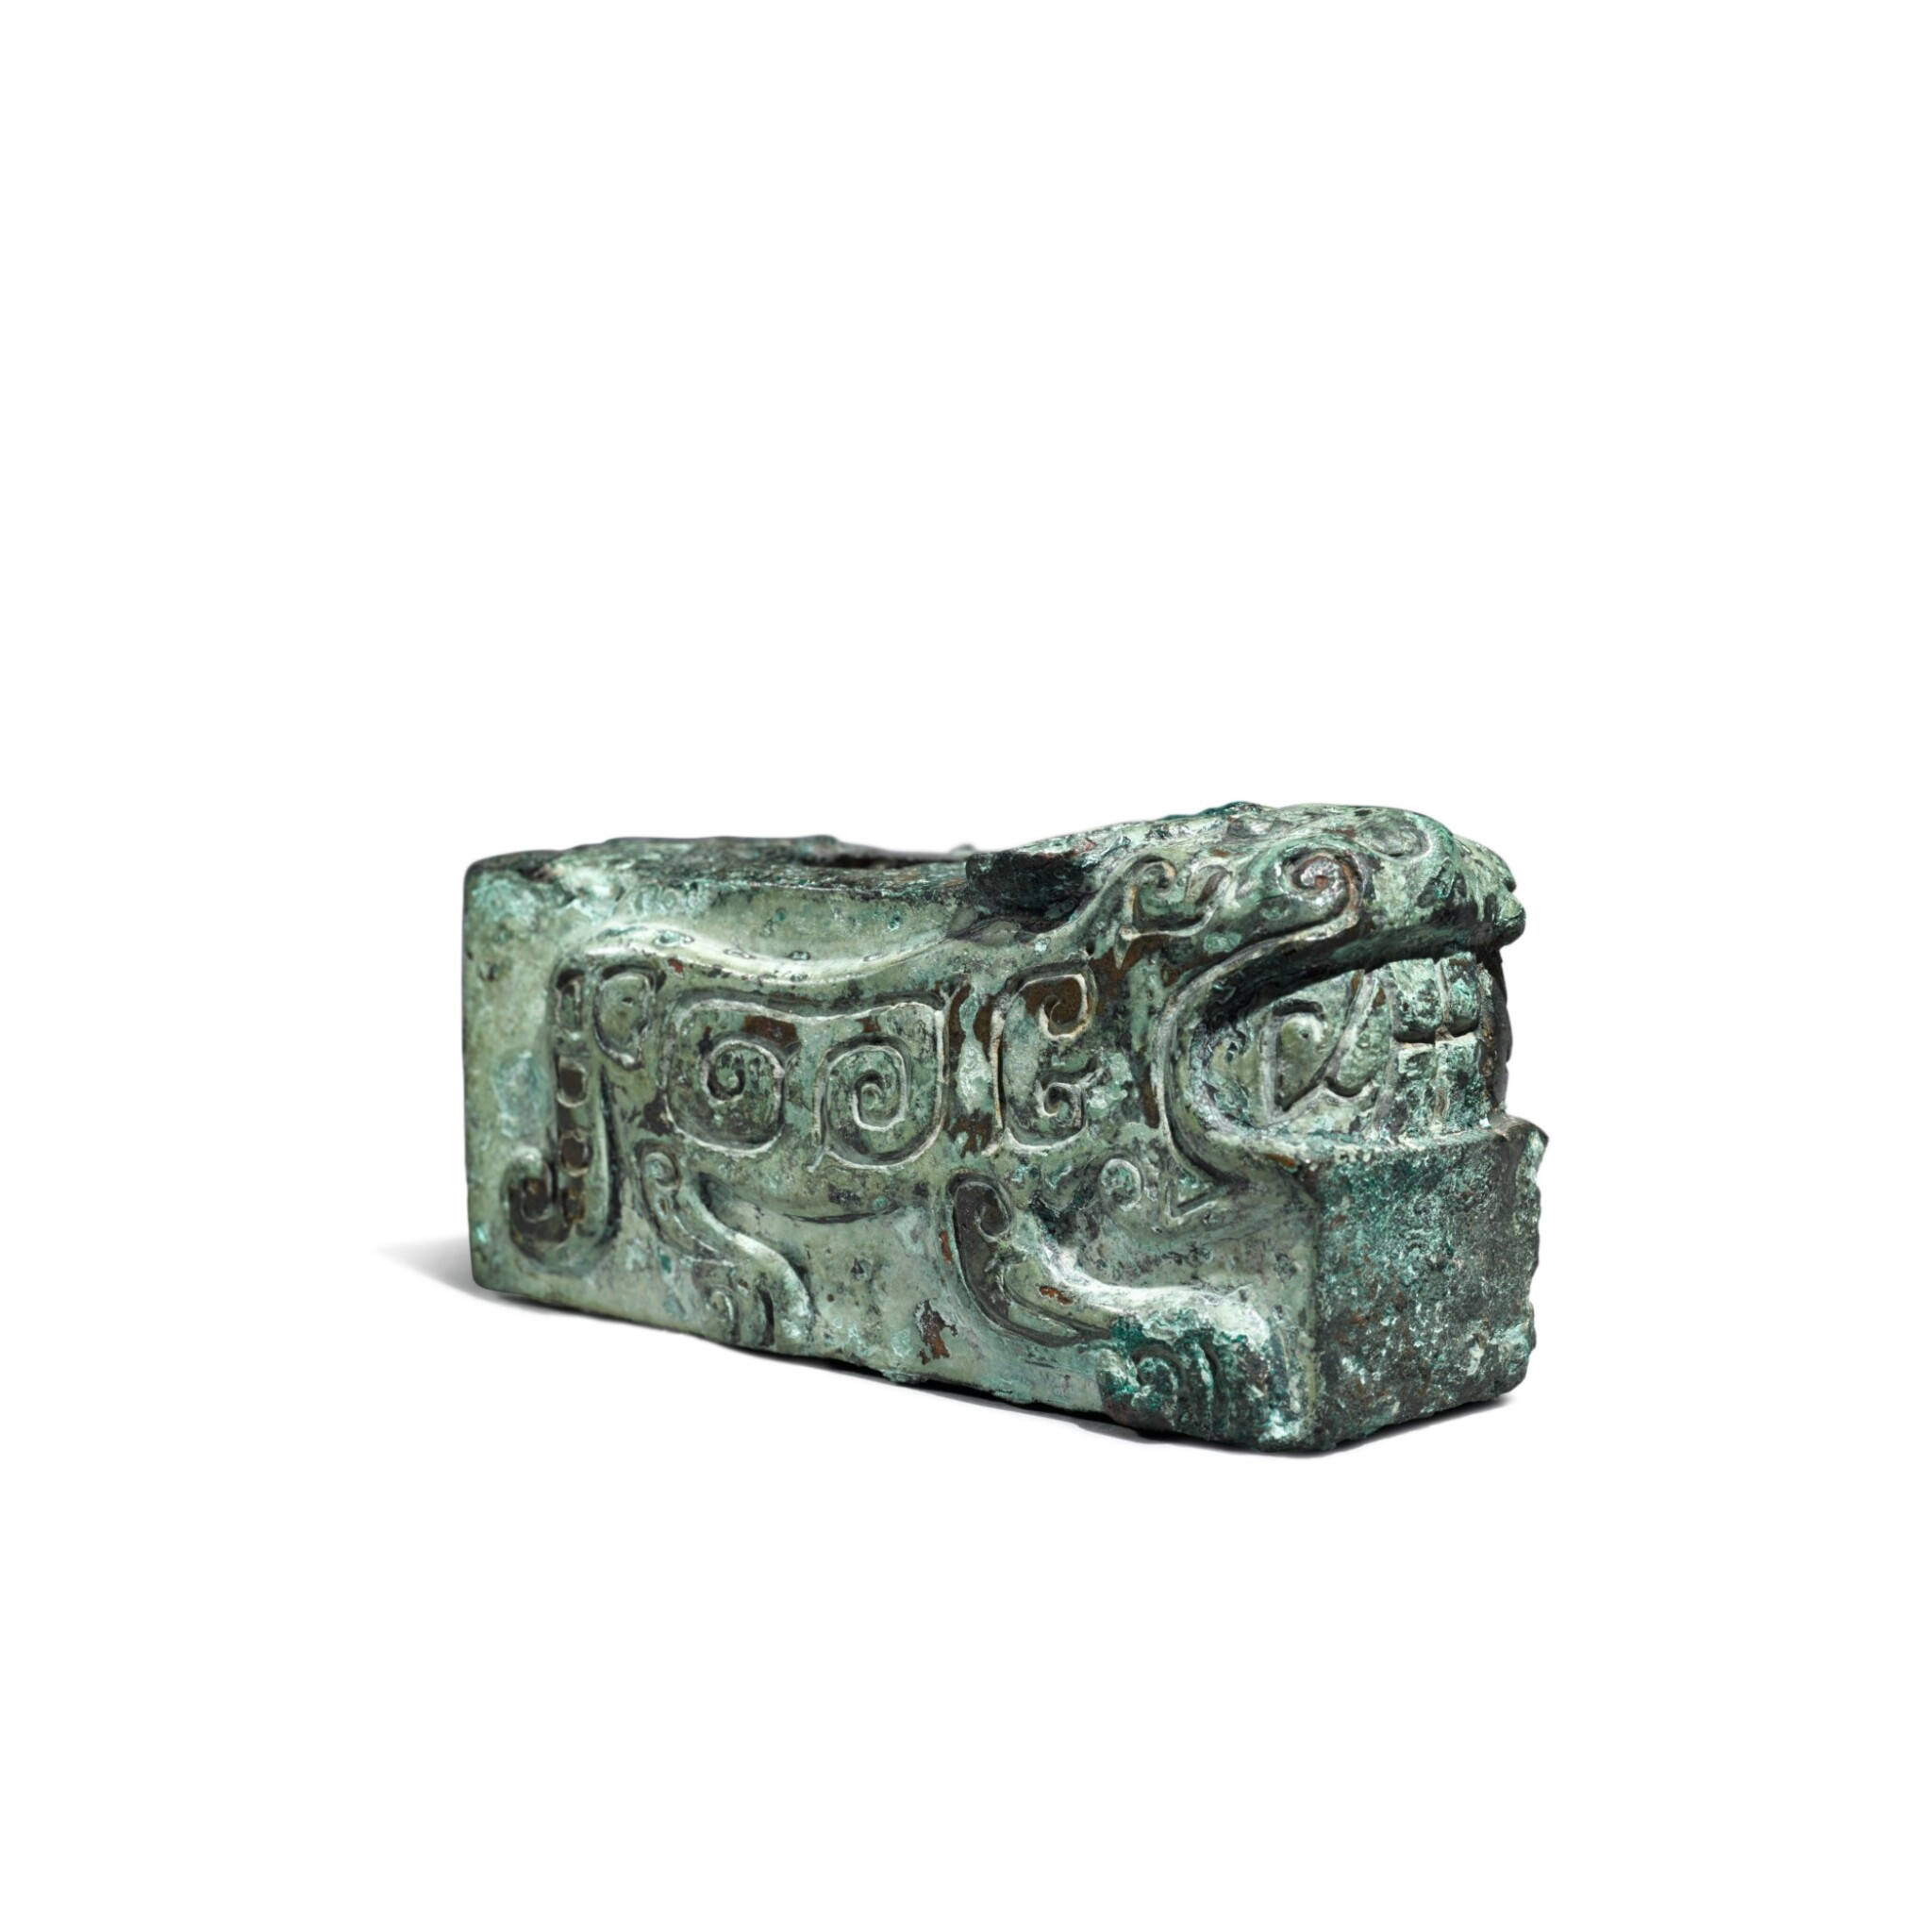 View full screen - View 1 of Lot 24. An archaic bronze 'tiger' fitting, Shang dynasty | 商 青銅虎紋部件.